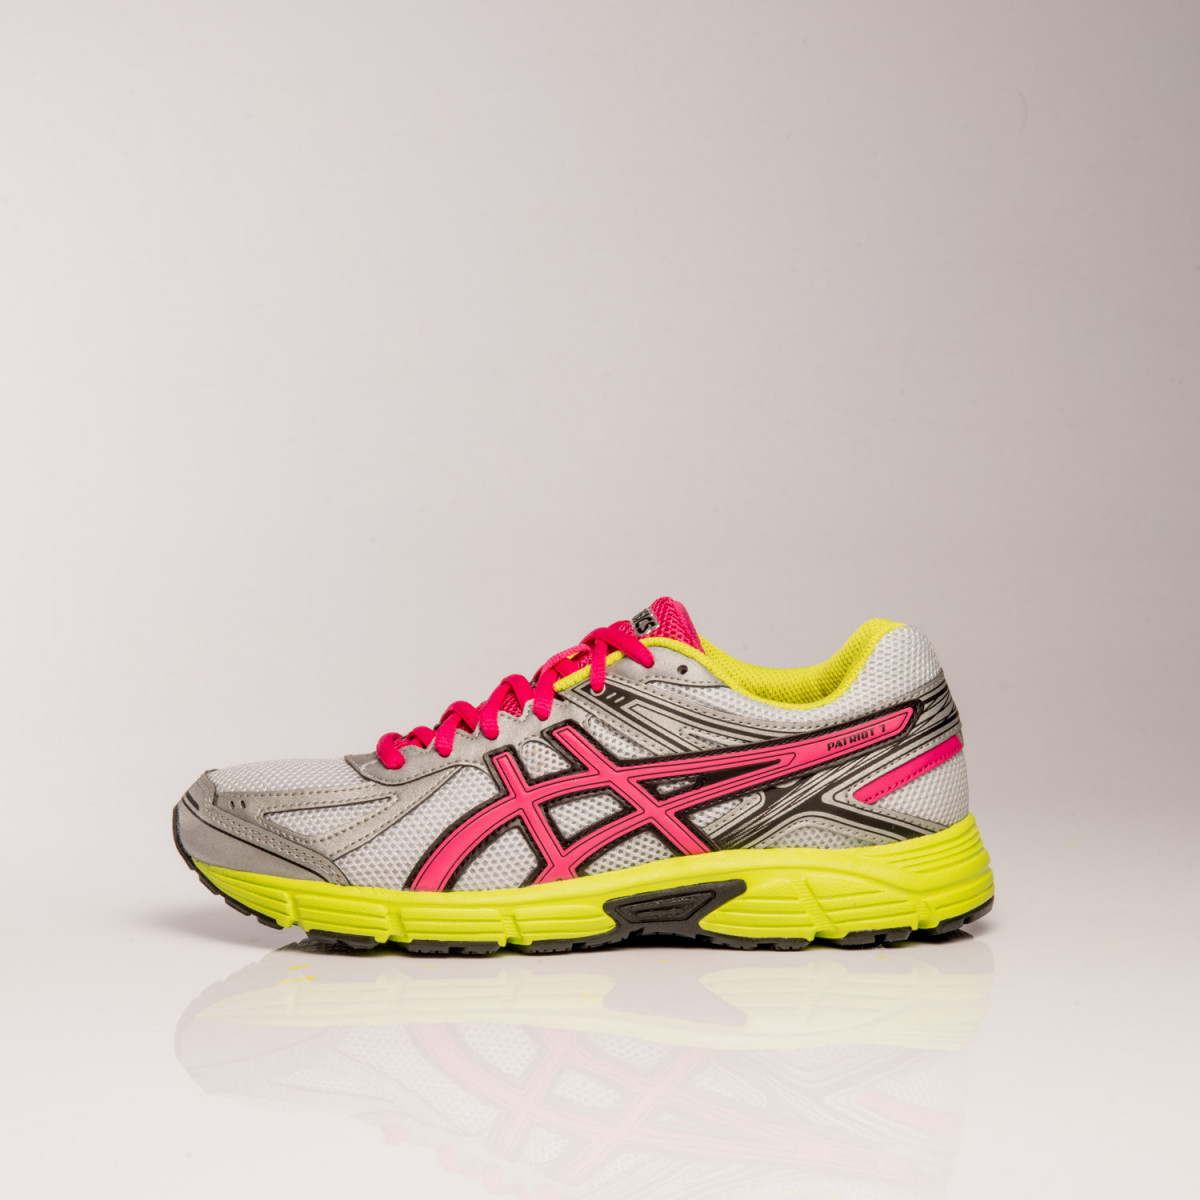 ZAPATILLAS ASICS PATRIOT 7